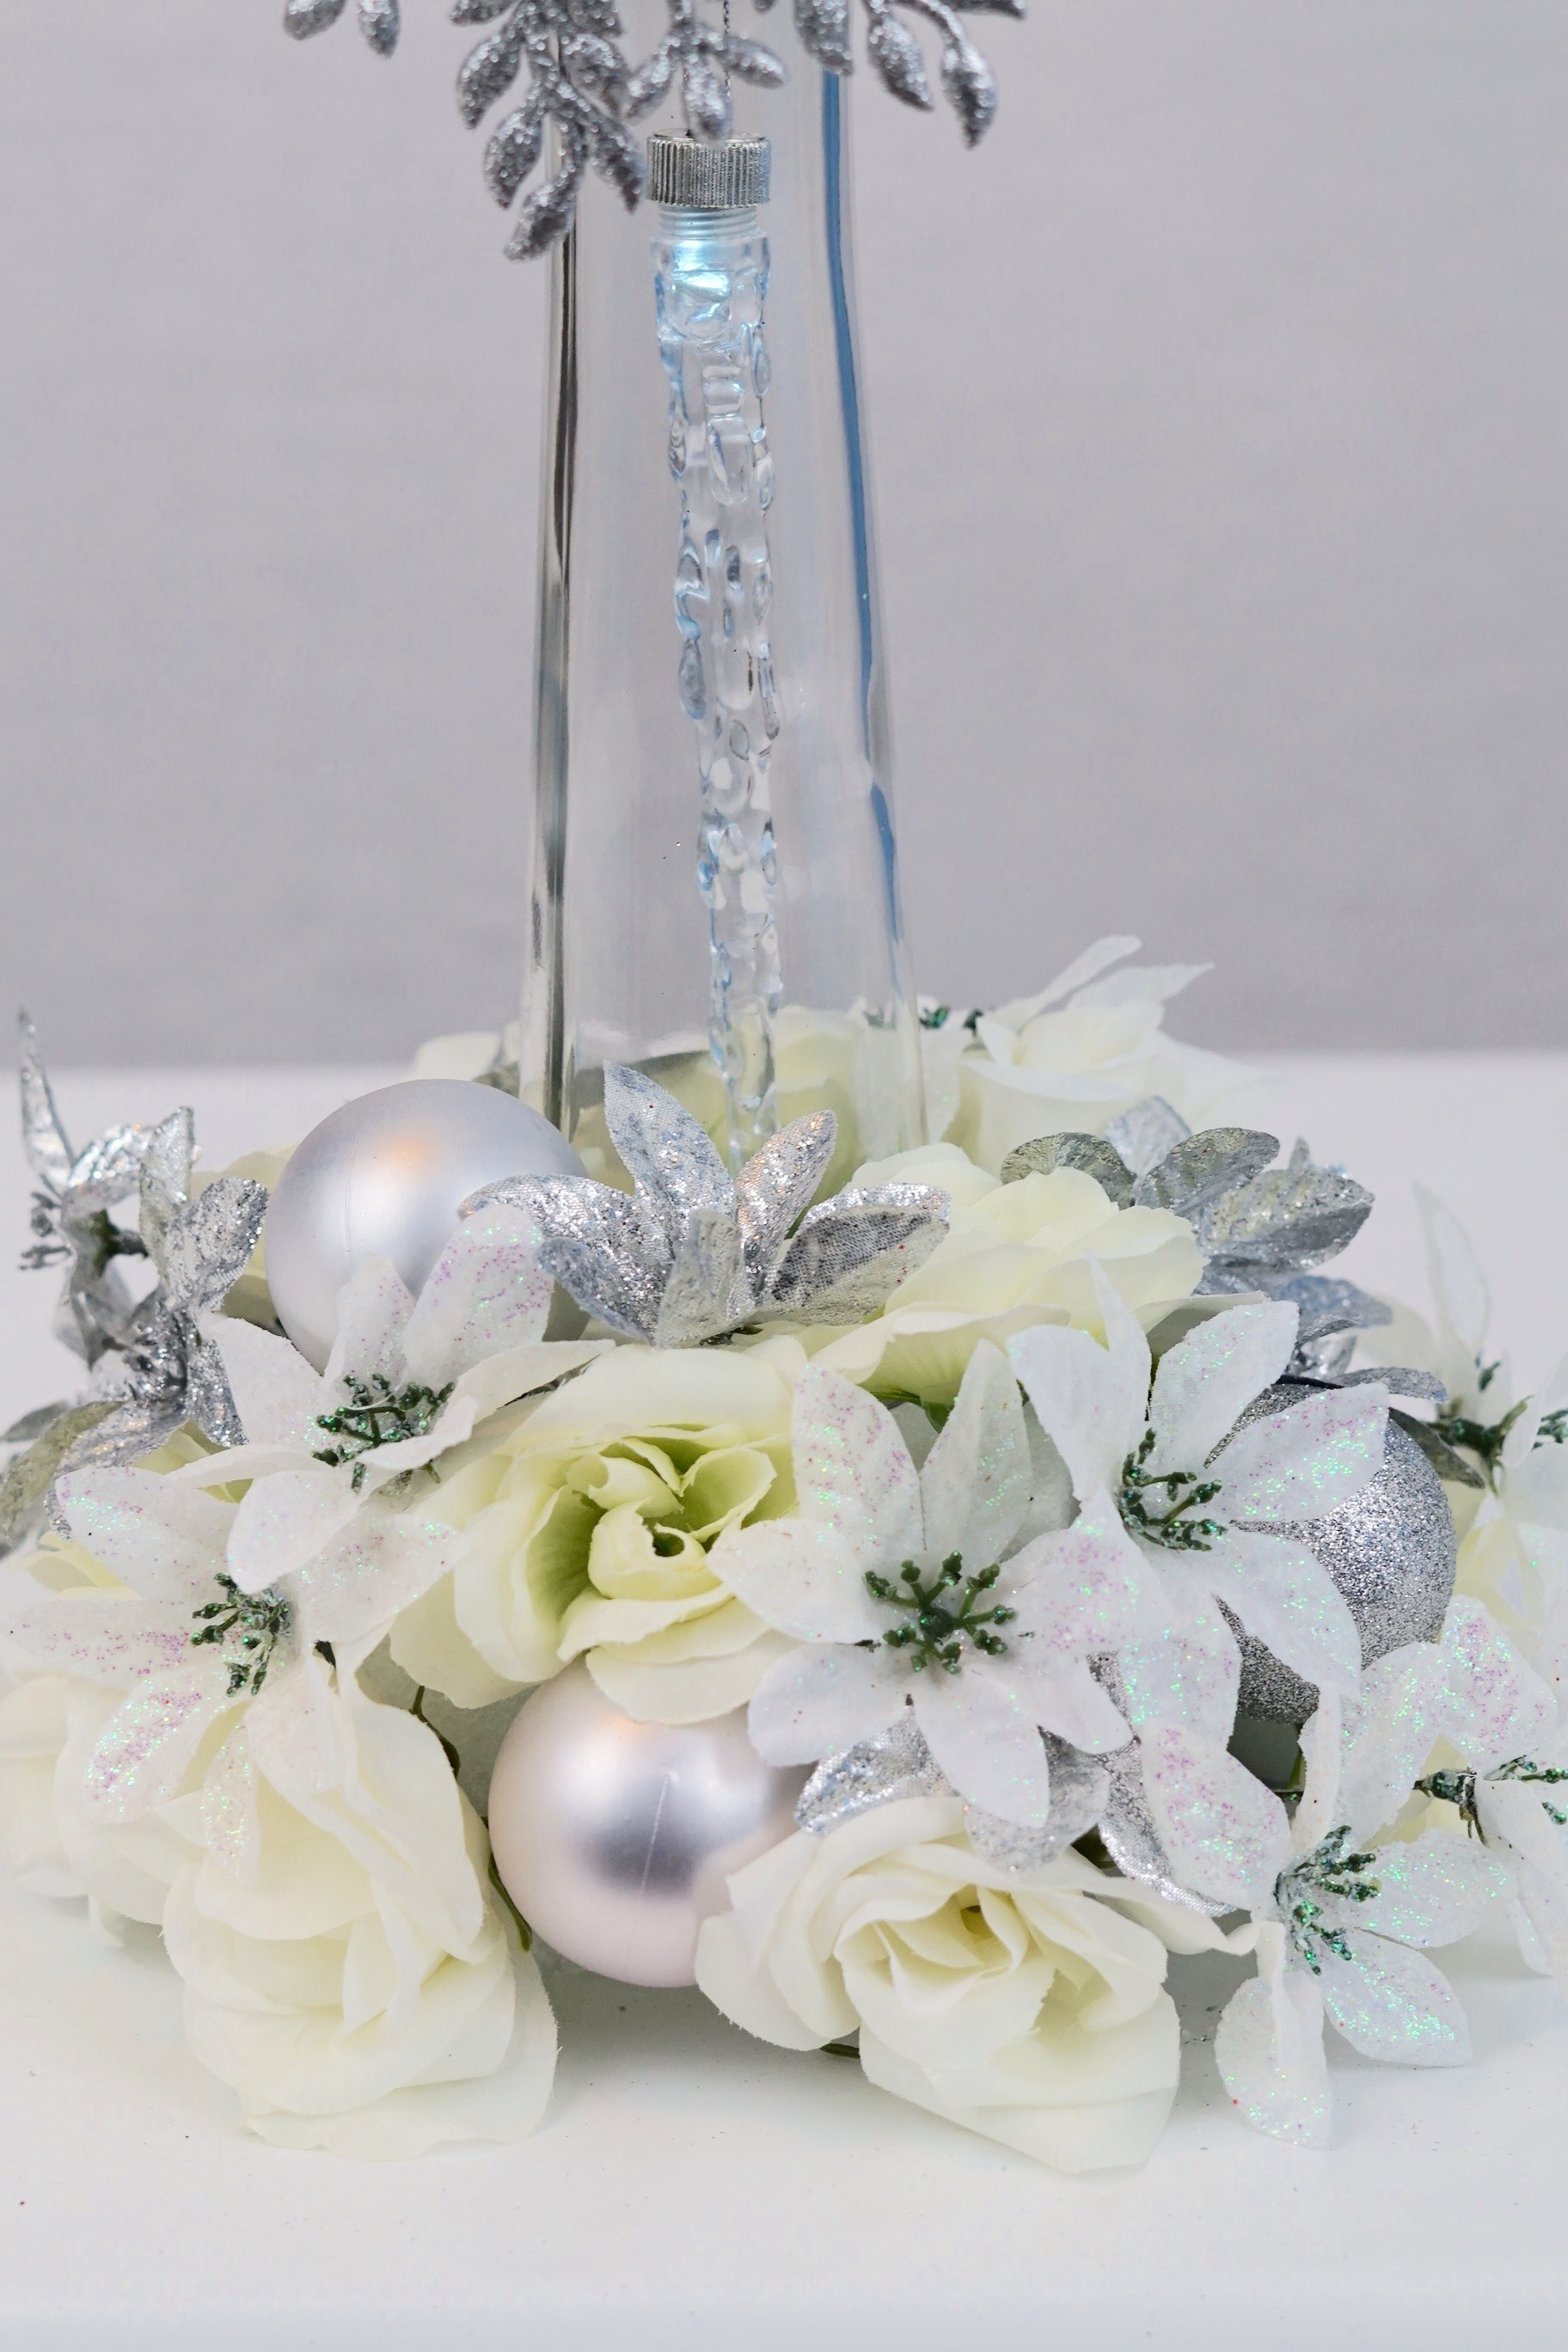 Elegant Dollar Tree Wedding Centerpiece Perfect For A Winter Wedding